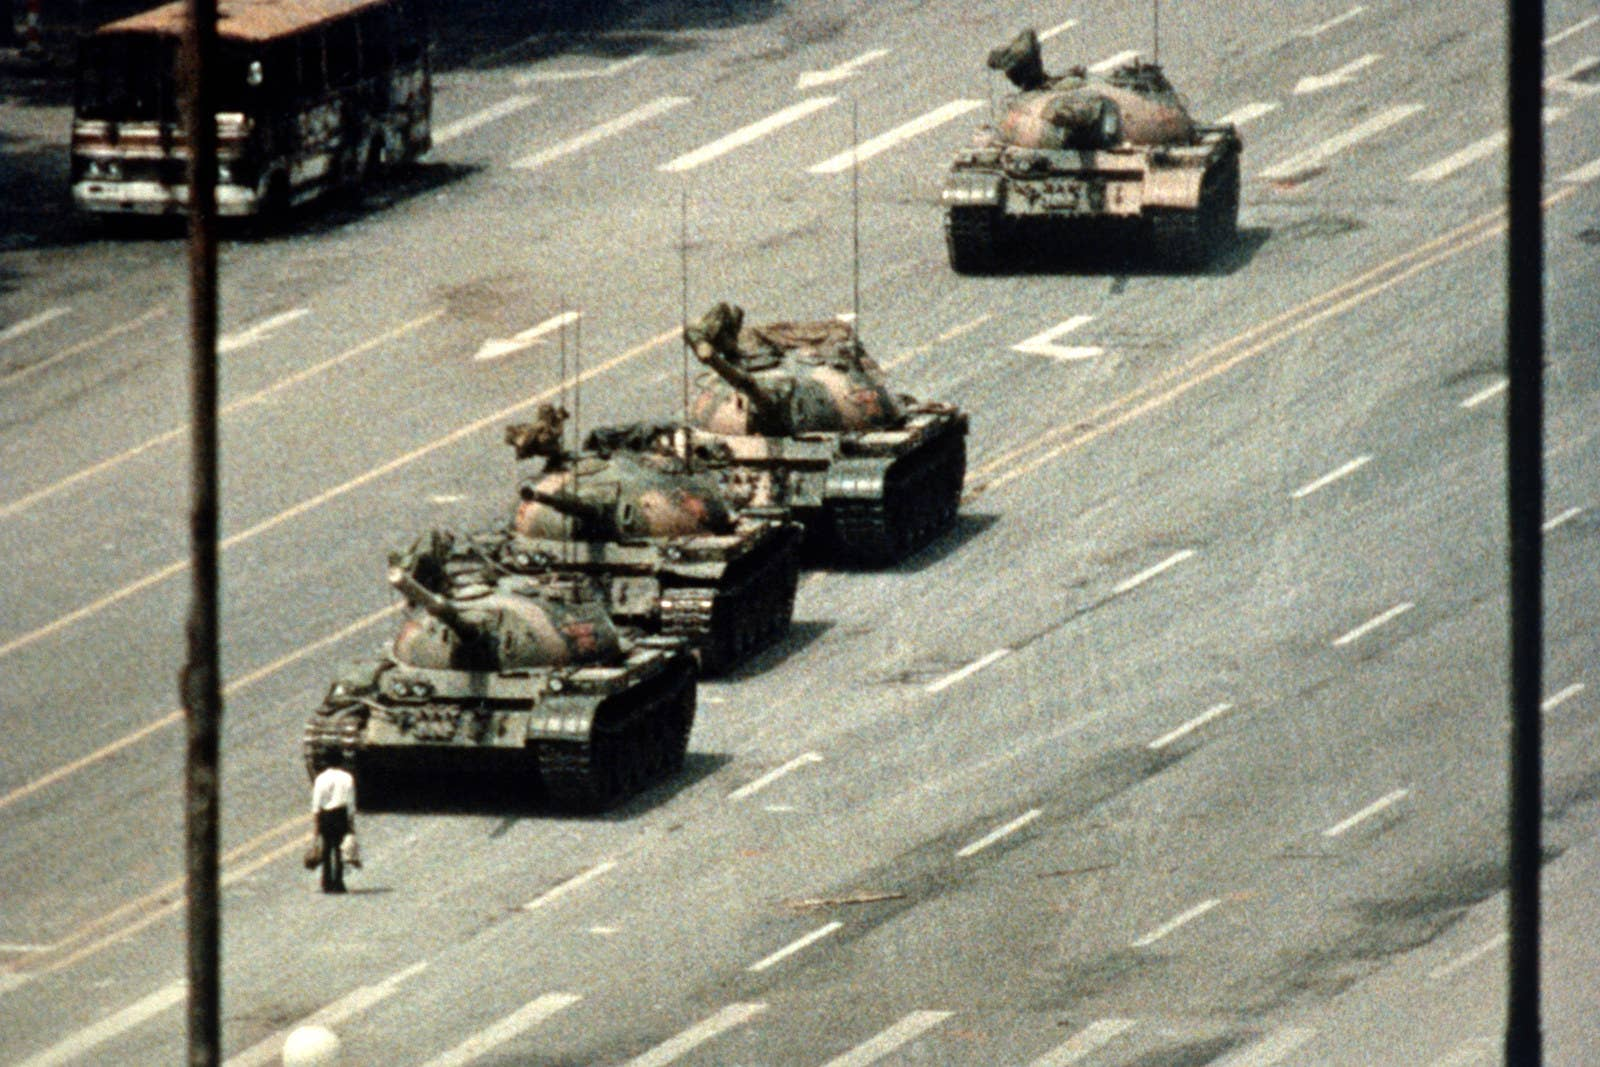 A Beijing demonstrator blocks the path of a tank convoy along the Avenue of Eternal Peace near Tiananmen Square.